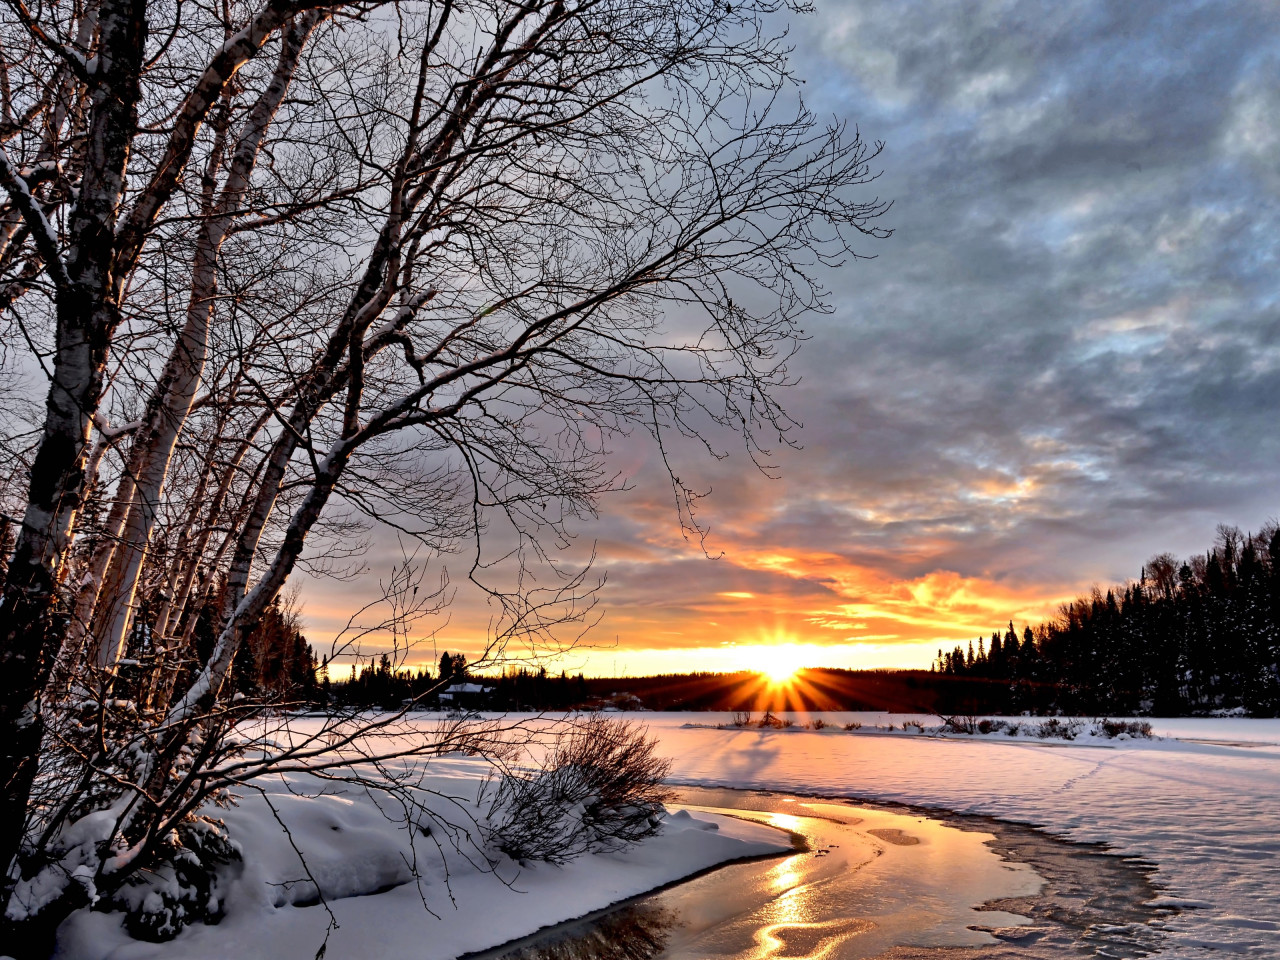 Sunset over the Winter landscape wallpaper 1280x960